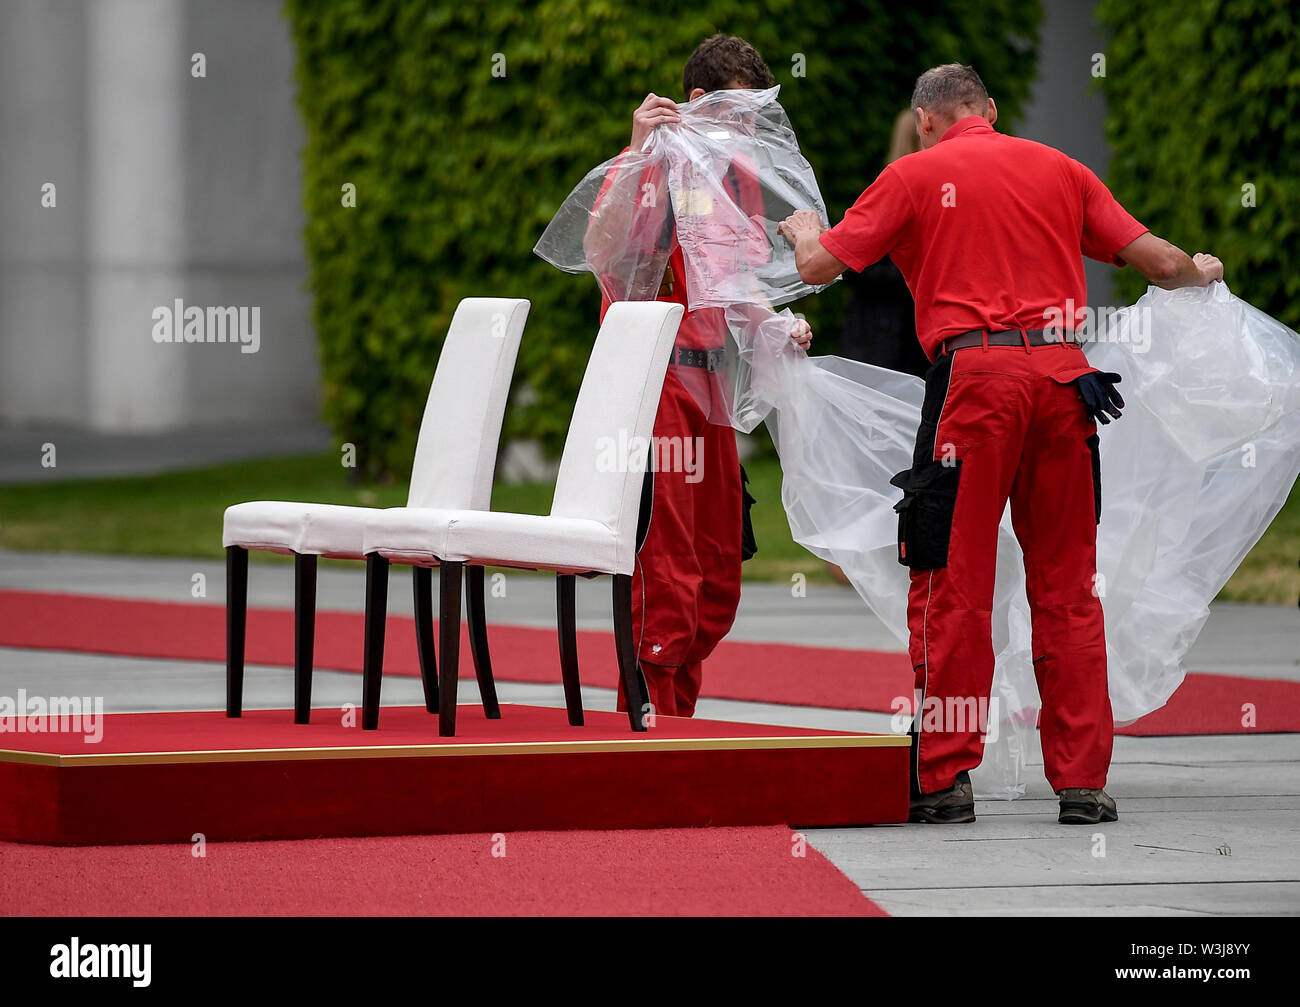 Berlin, Germany. 16th July, 2019. Employees unpack the chairs for the reception of Moldovan Prime Minister Sandu with military honors. For the second time in a row, Chancellor Angela Merkel (CDU) has welcomed a foreign guest, some of them sitting with military honors. After several tremors during public appearances such as this, Merkel performed the ceremony for the first time last week, partly sitting down. Credit: Britta Pedersen/dpa-Zentralbild/dpa/Alamy Live News - Stock Image